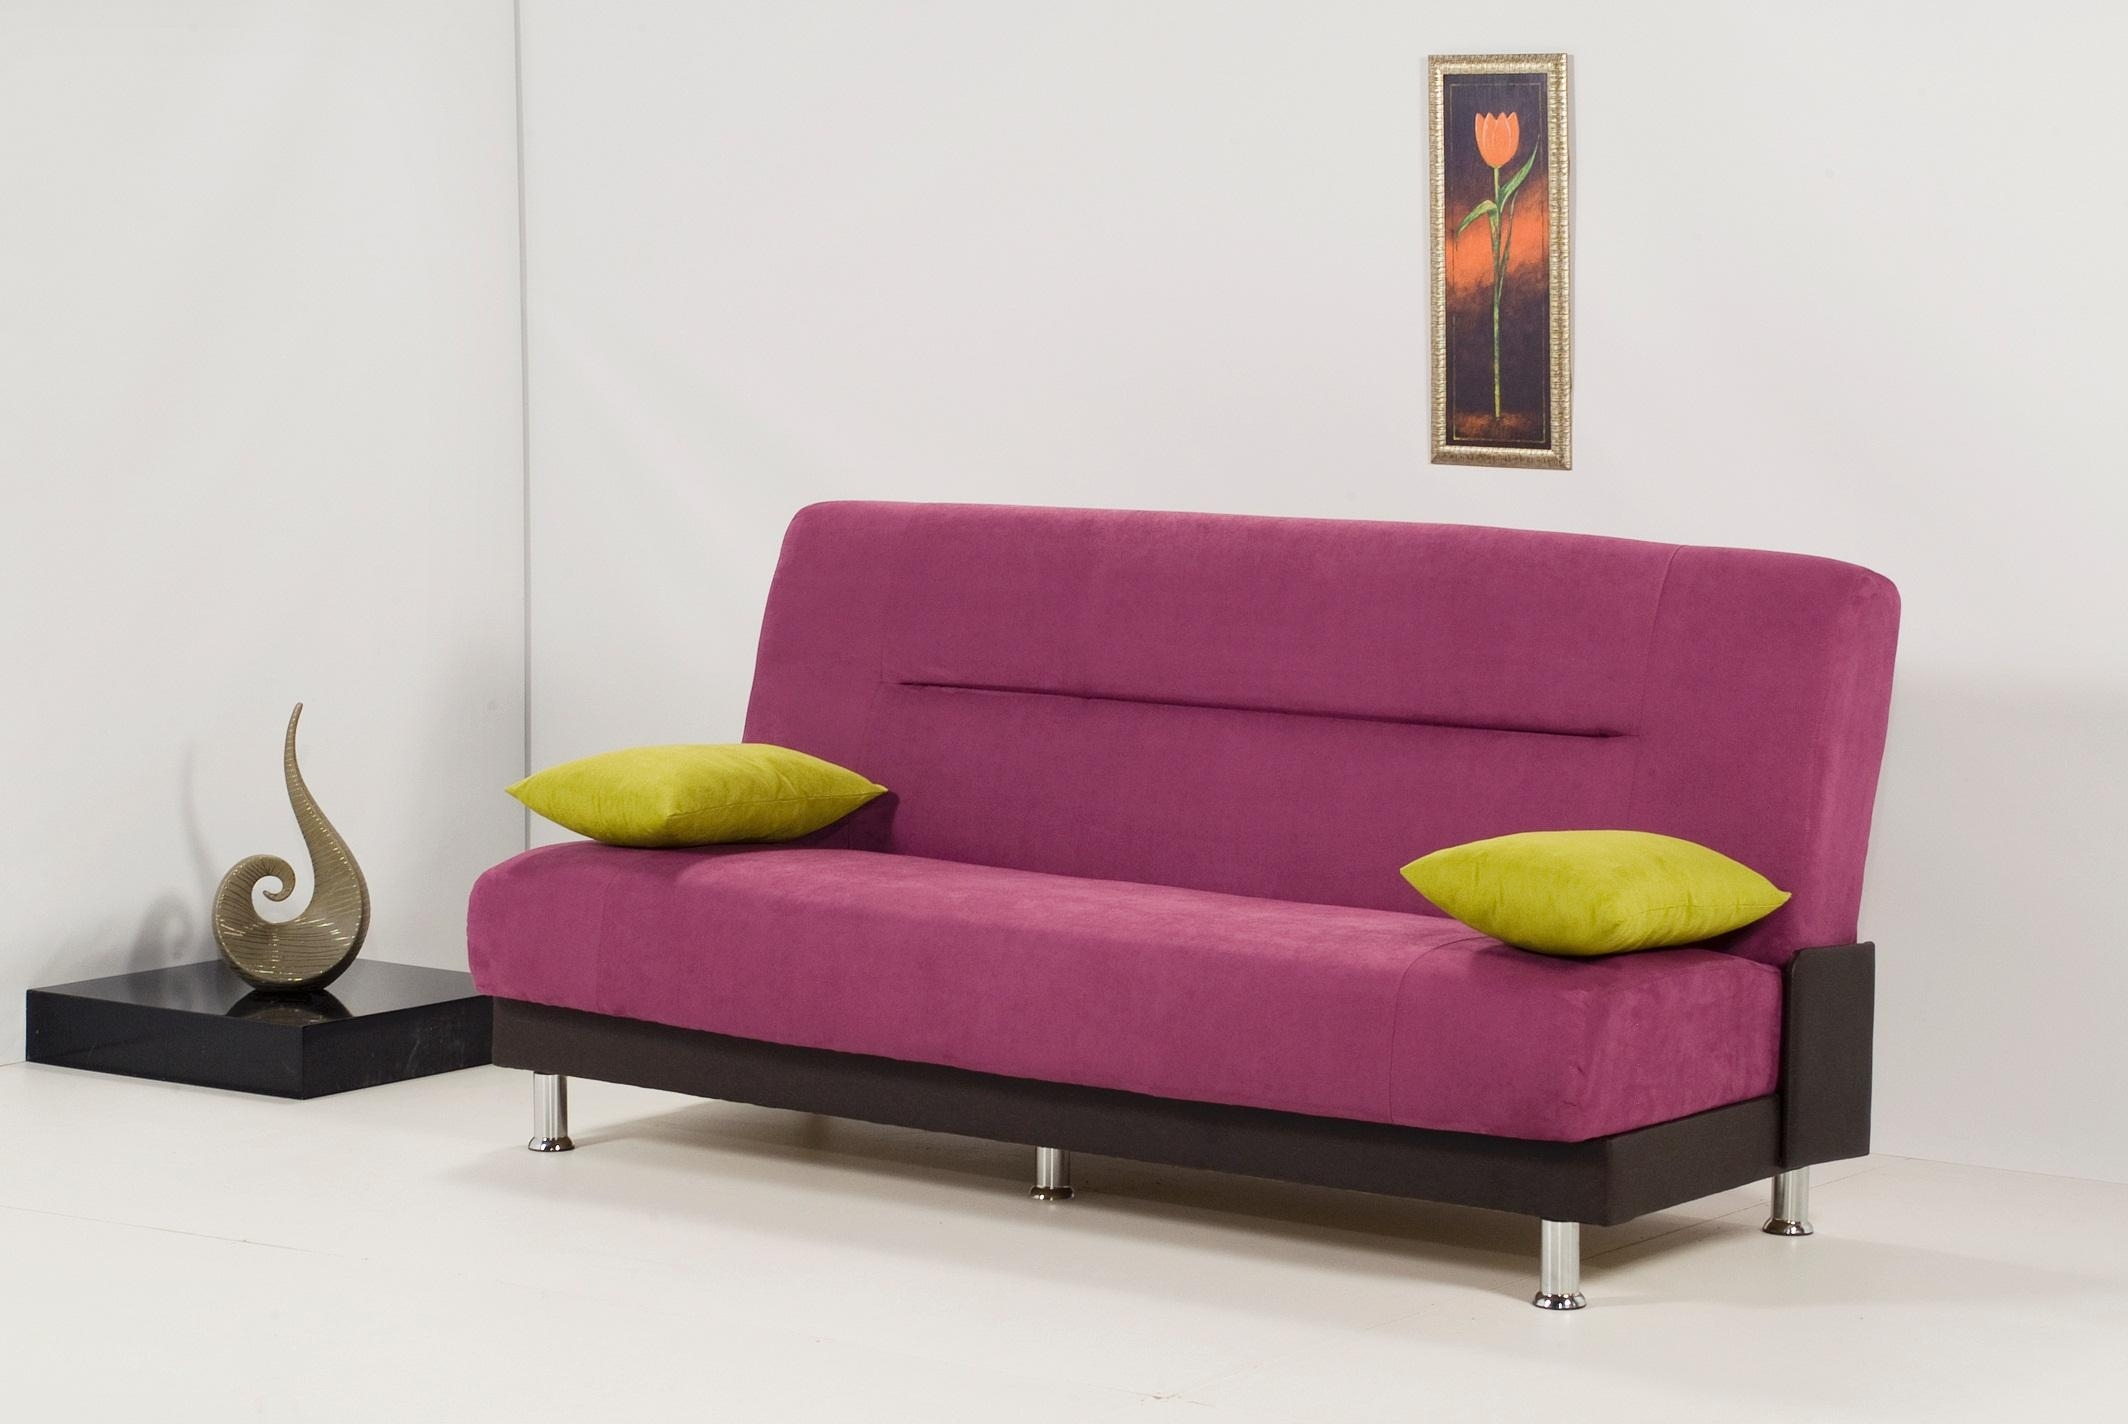 Carlyle Sofa With Ideas Gallery 27013 | Kengire With Carlyle Sofa Beds (Image 1 of 20)